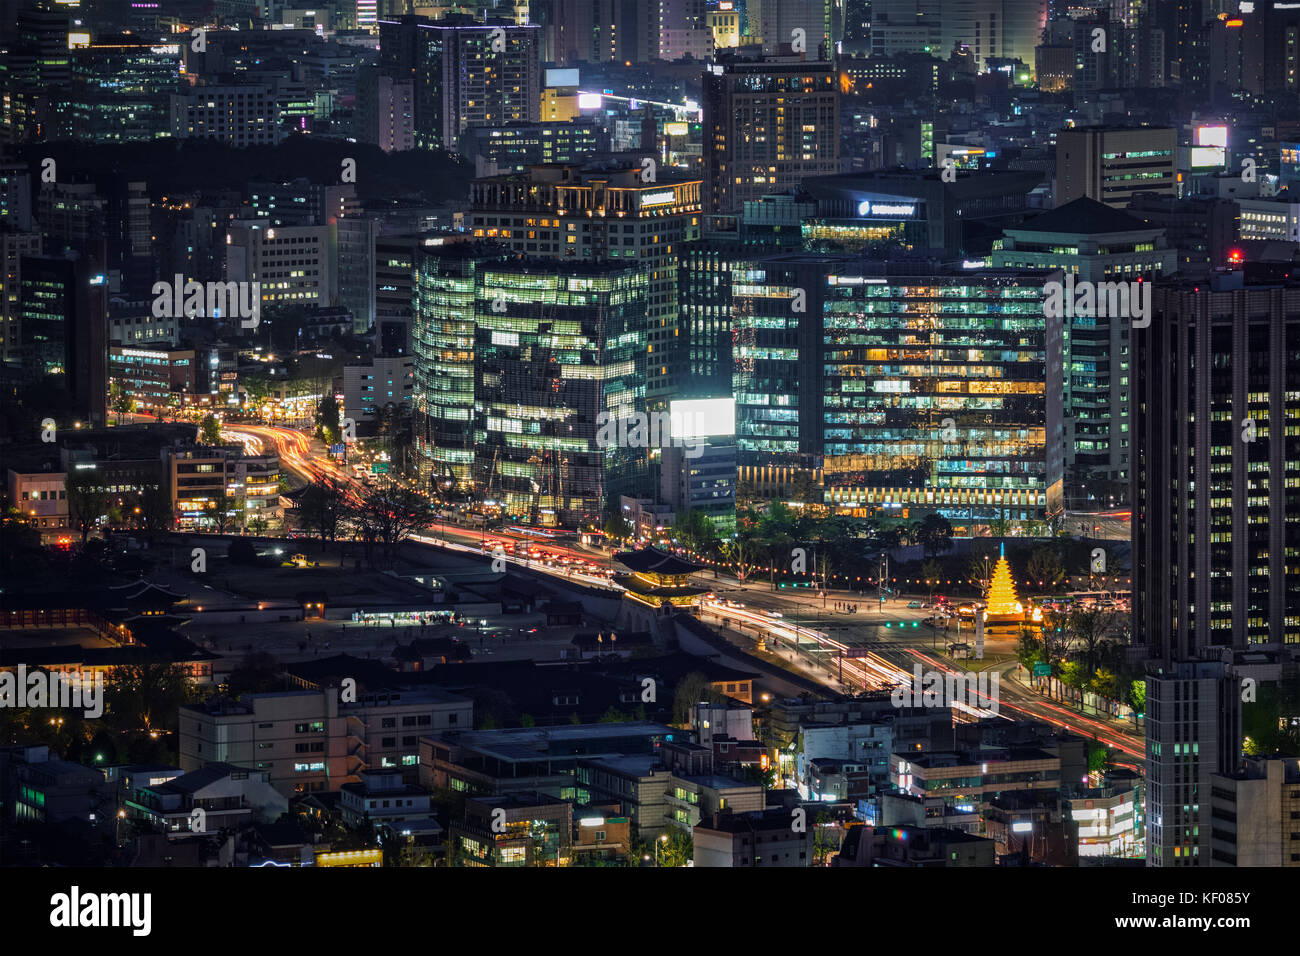 Seoul skyscrapers in the night, South Korea. - Stock Image